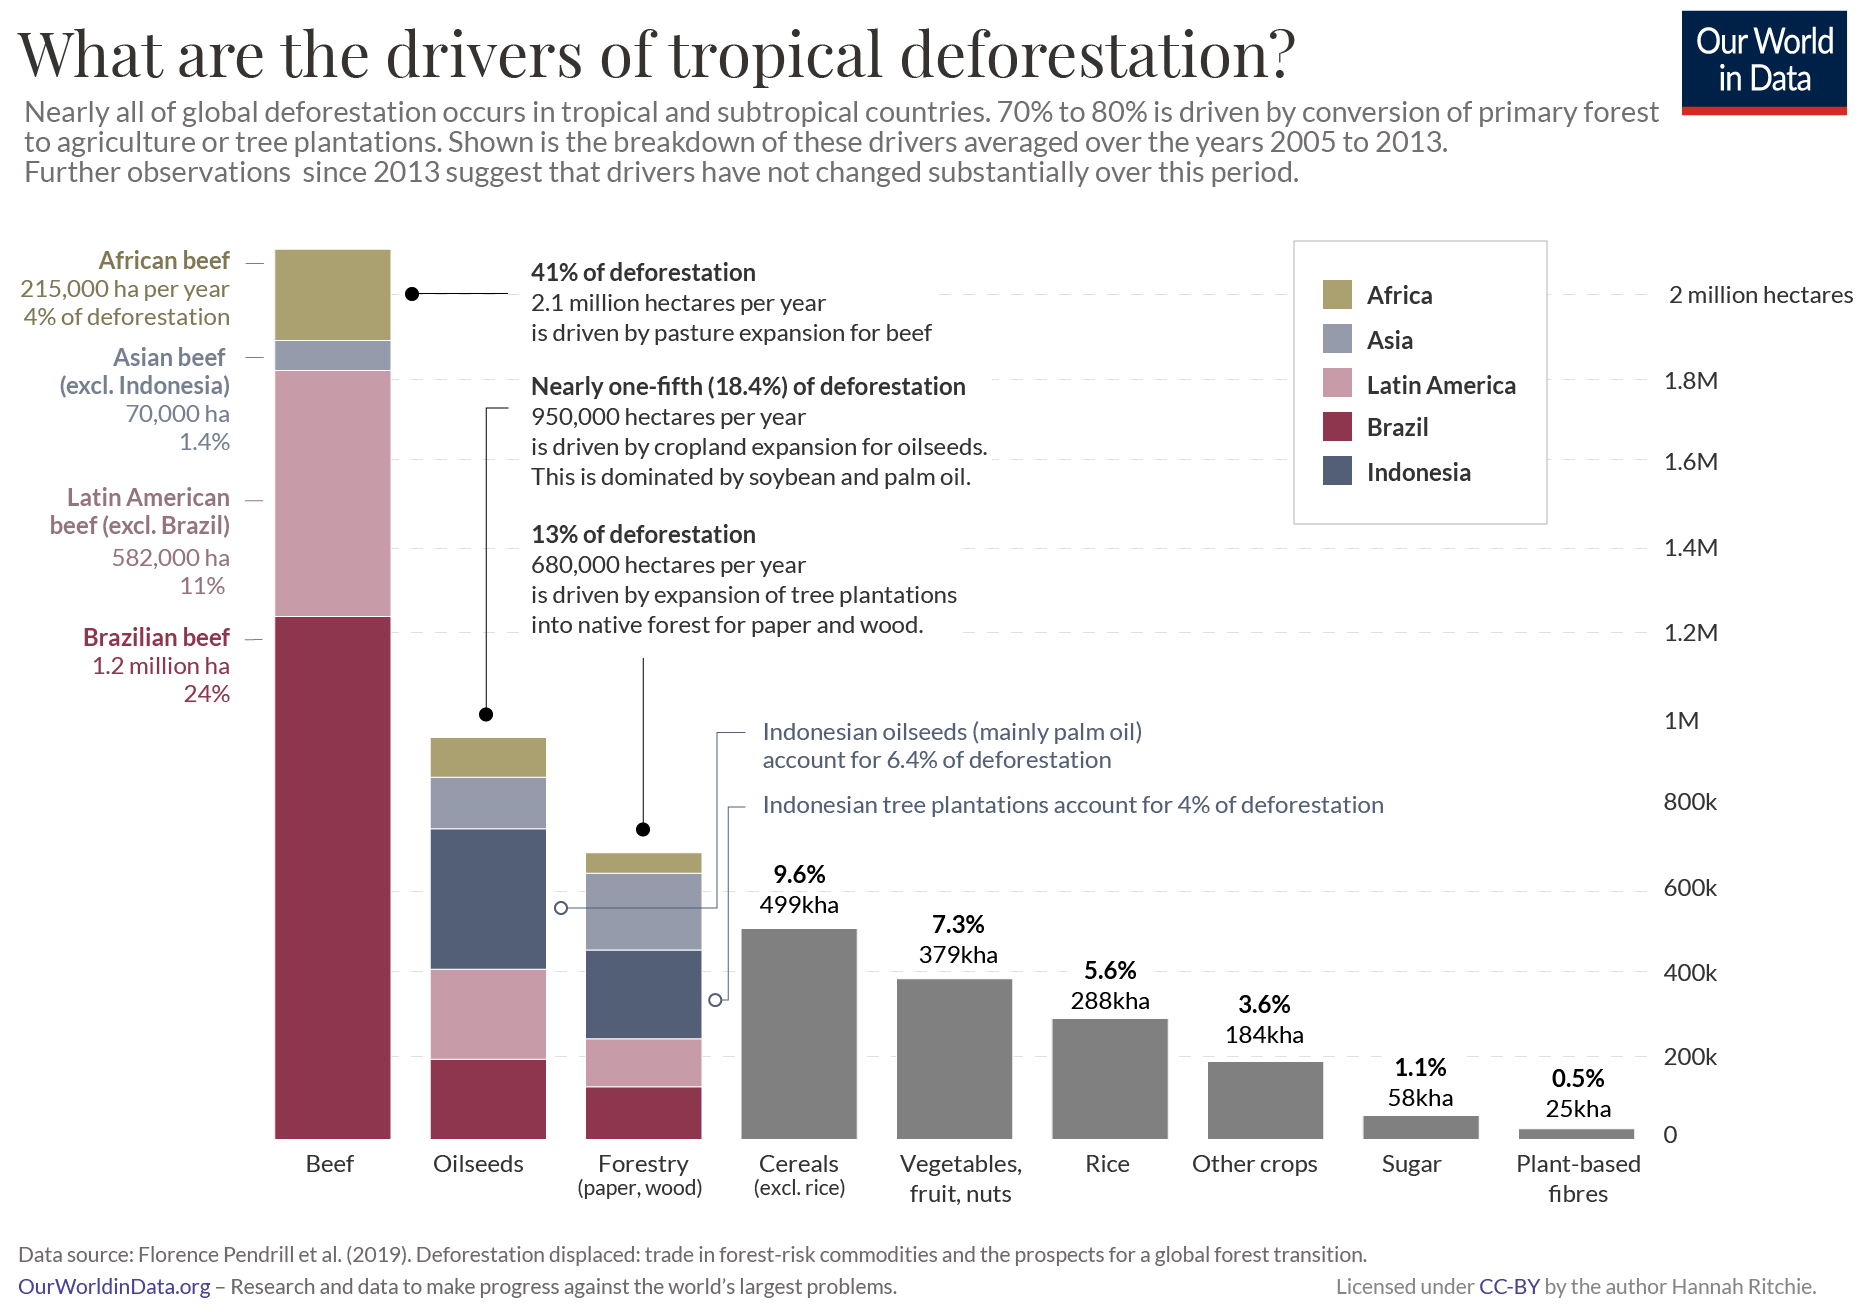 Tropical Deforestation Drivers